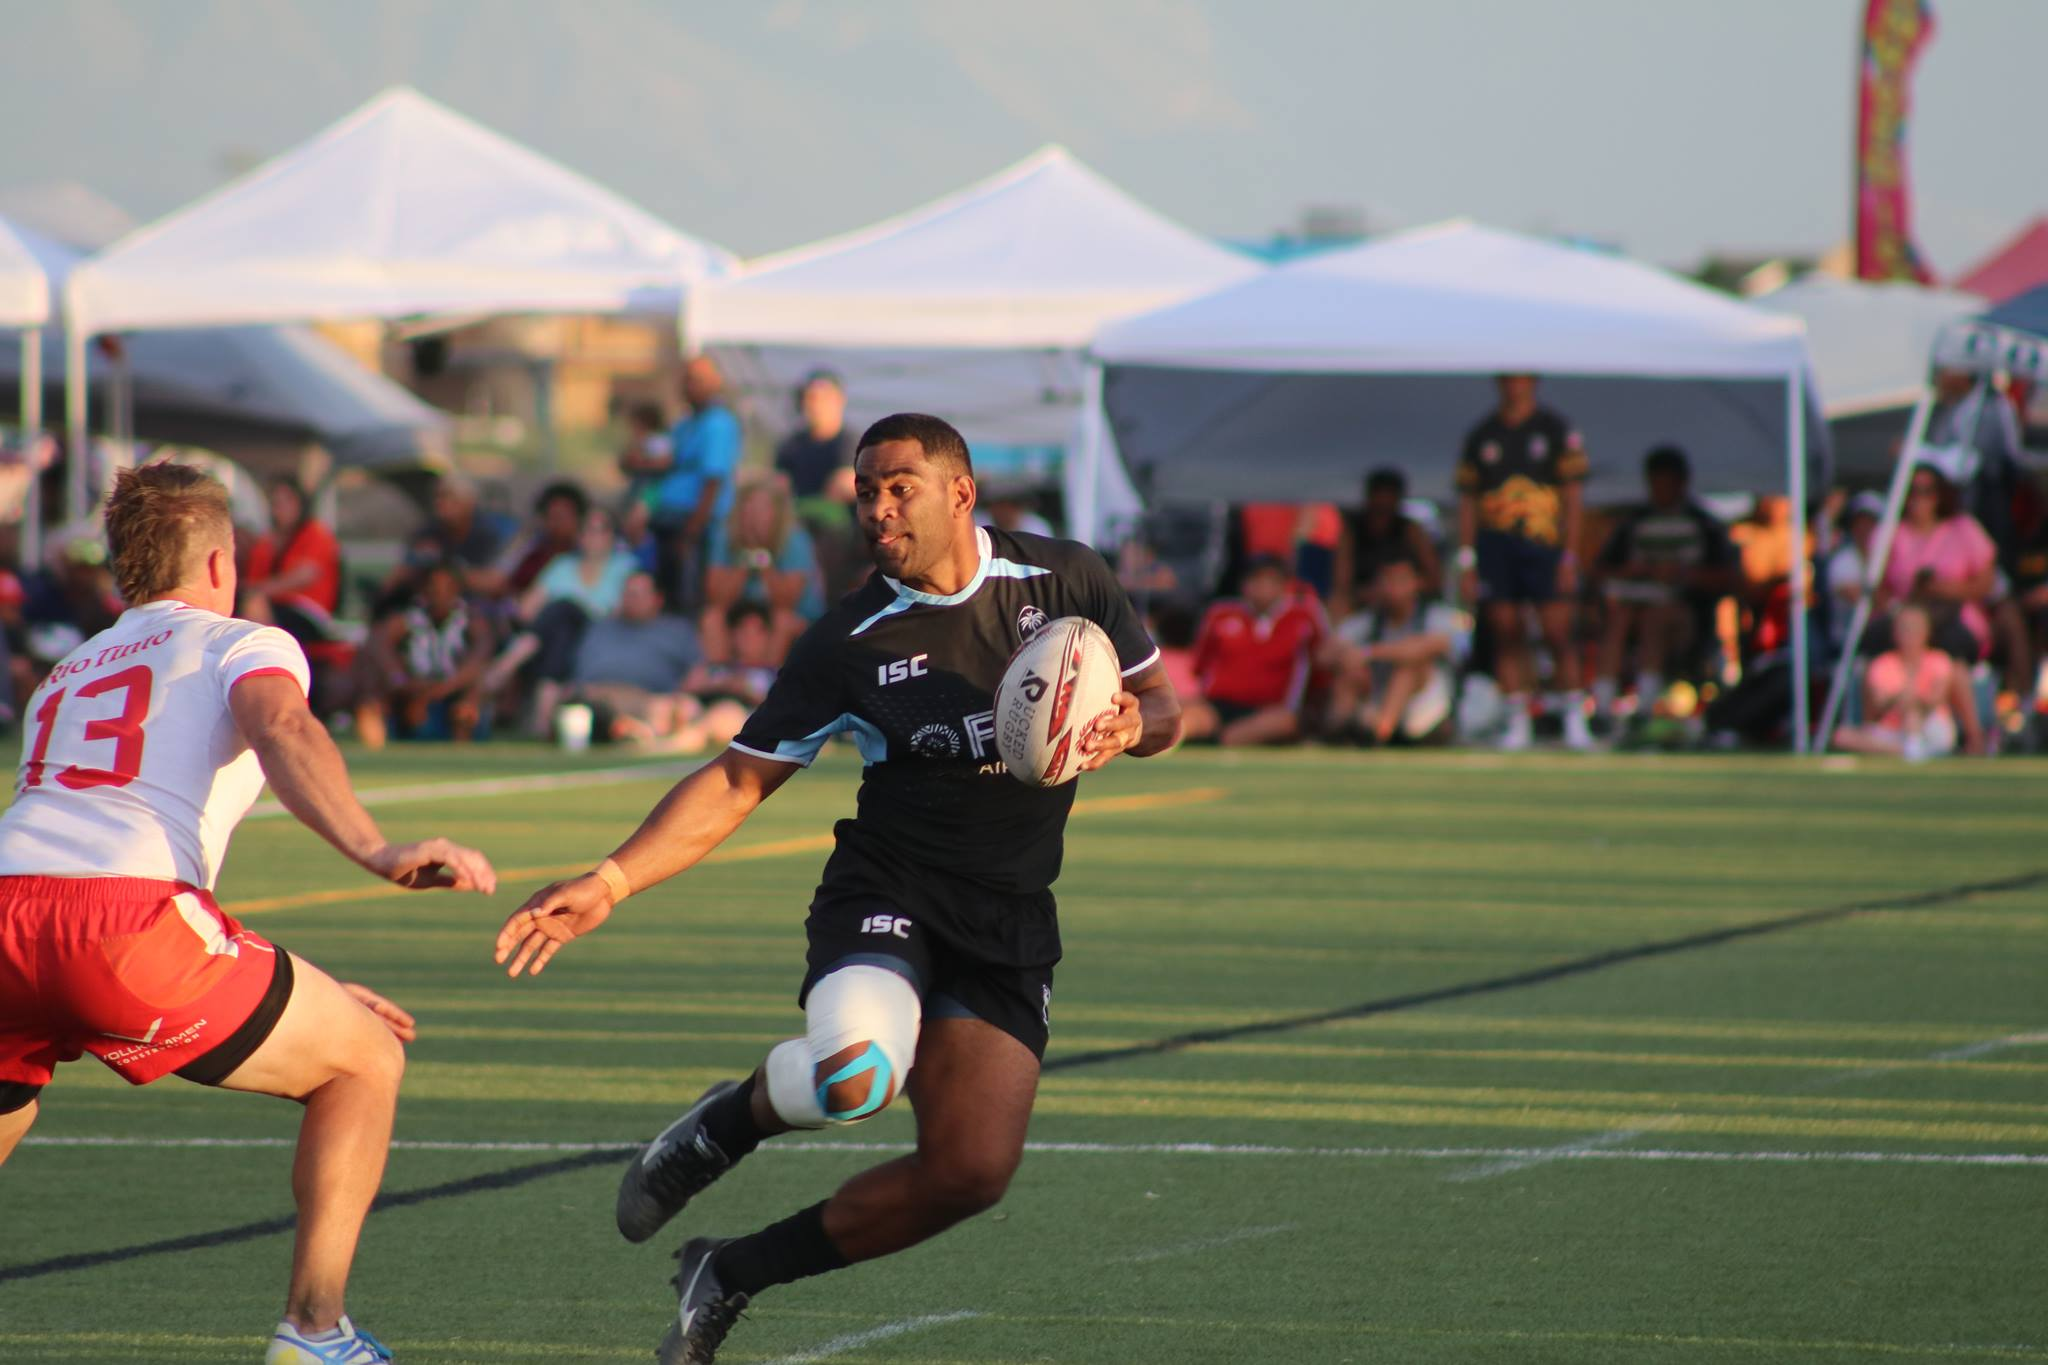 Fiji Airways Fijian 7s rep Vatemo Ravouvou in action during their scrimmaging sessions at the Pioneer Rugby 7s tournament at Salt Lake City.  Photo: Pioneer Rugby Foundation.